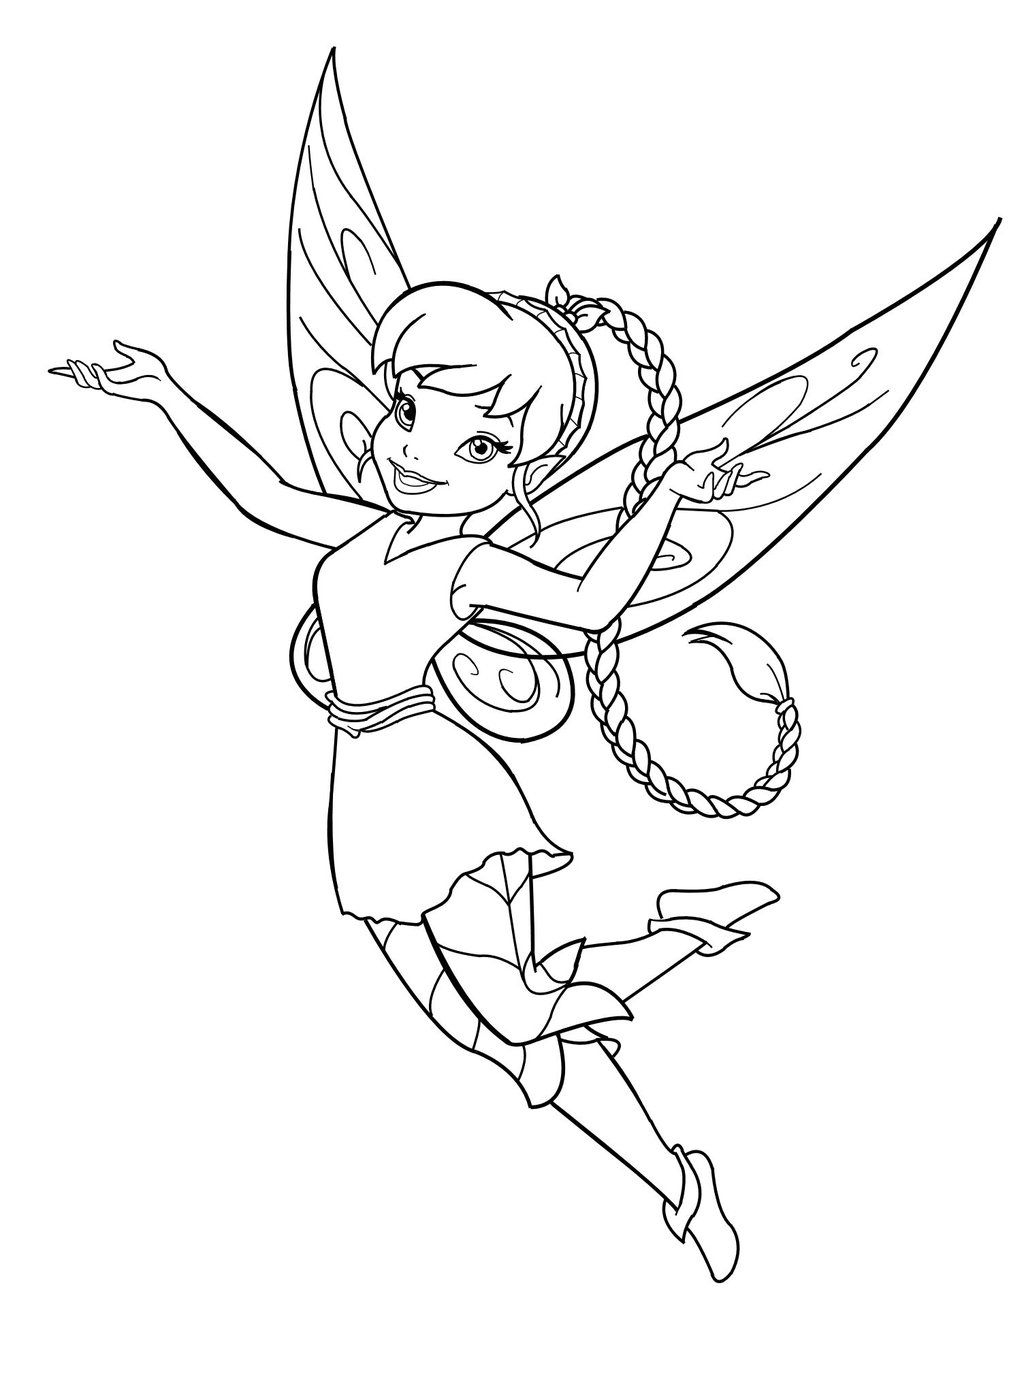 Free Printable Fairy Coloring Pages For Kids | Coloring Therapy - Free Printable Fairy Coloring Pictures